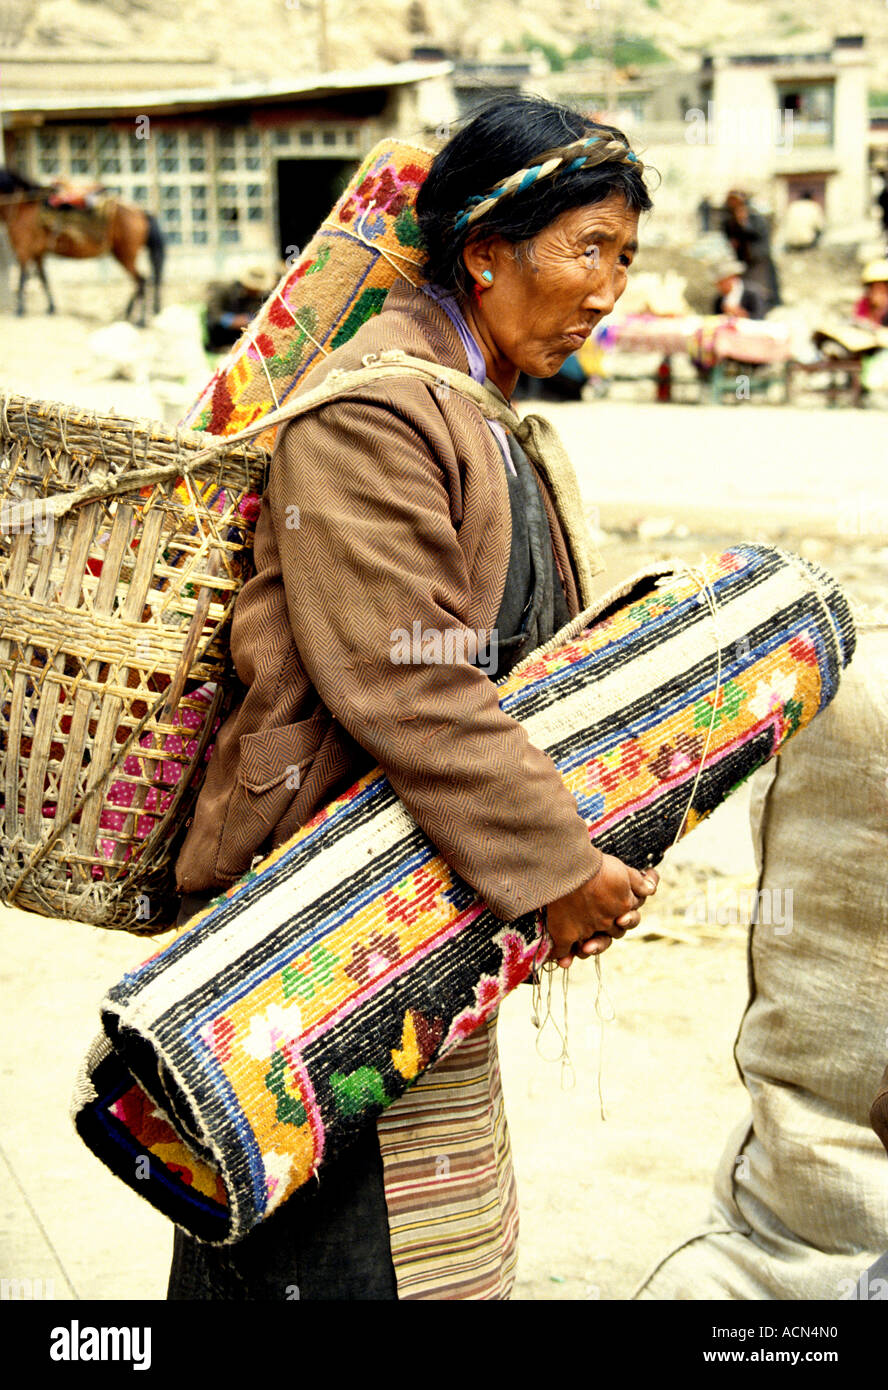 Tibetan  woman selling  locally made colorful  rugs in the market at Gyantse in Tibet - Stock Image